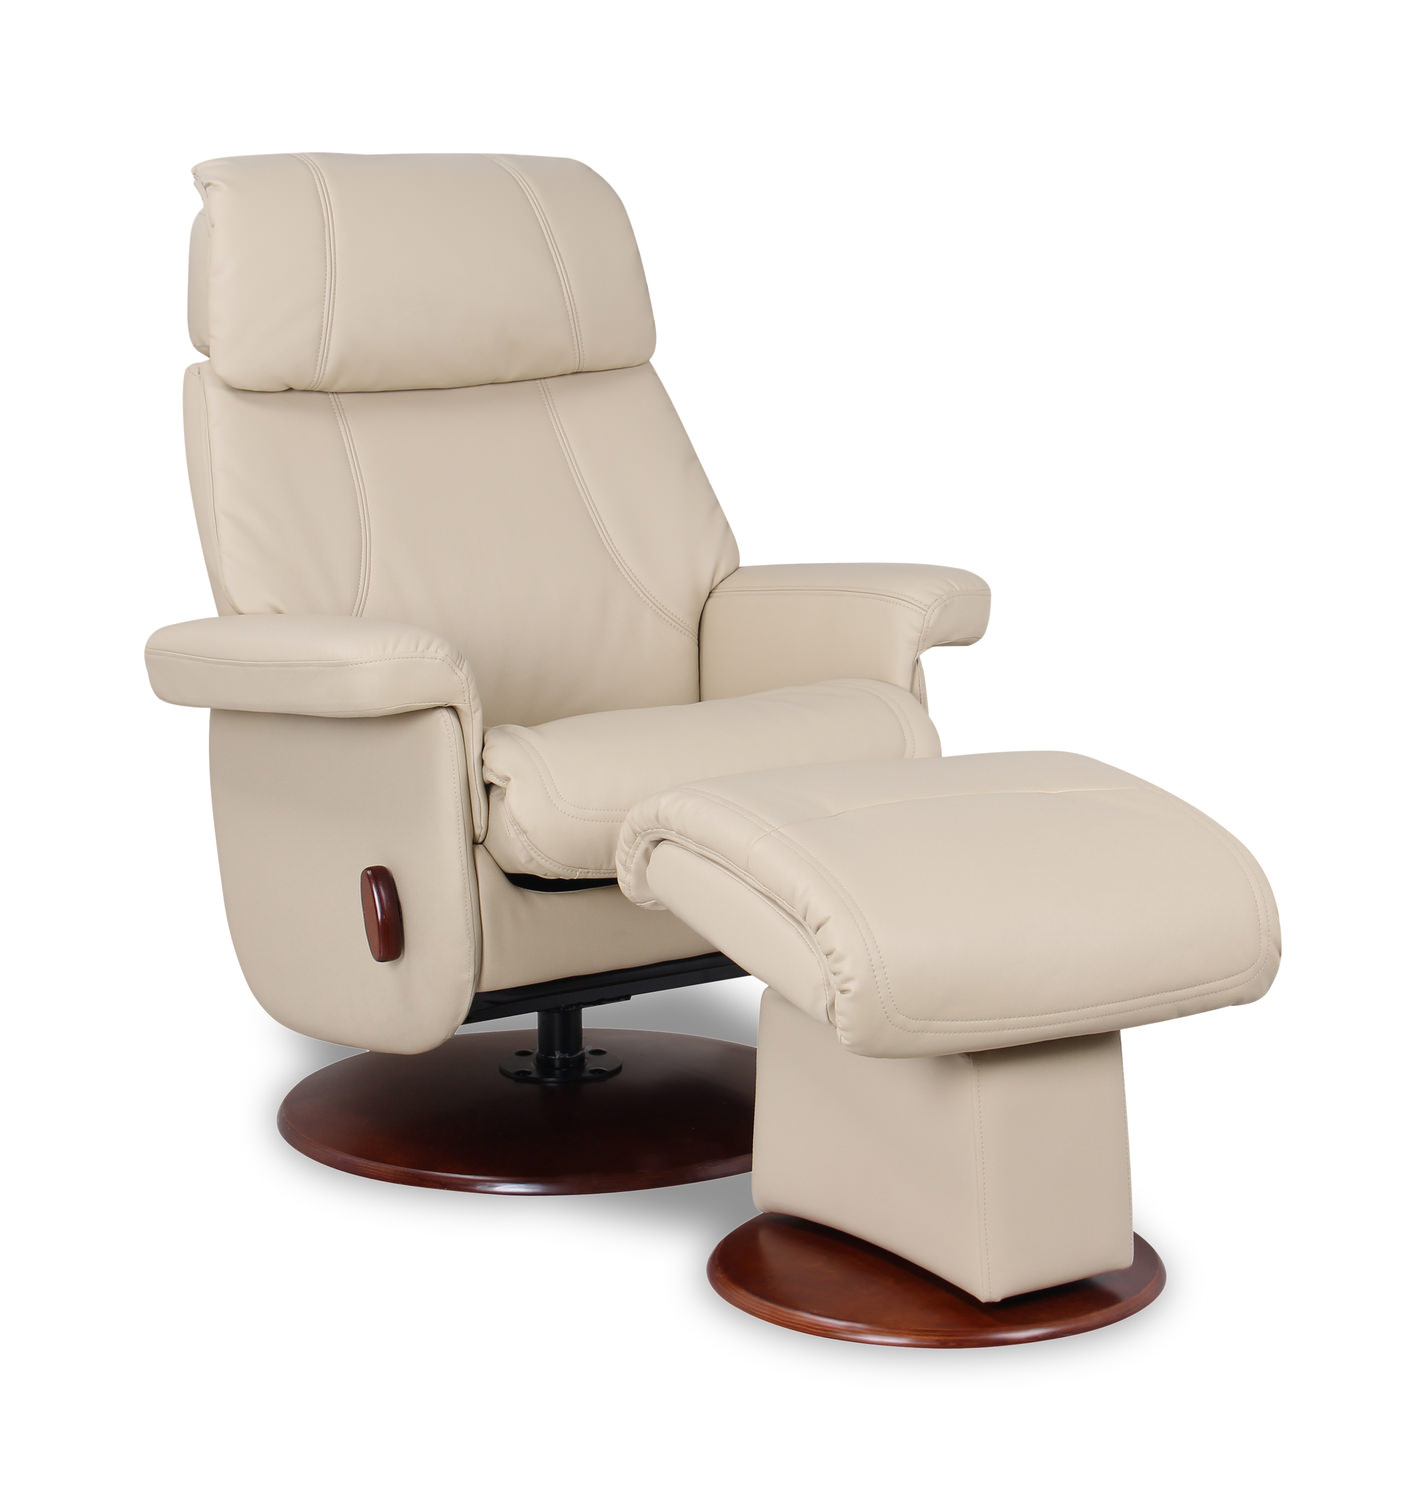 Swivel recliner chairs trendy design swivel recliner for Swivel reclining chairs for living room